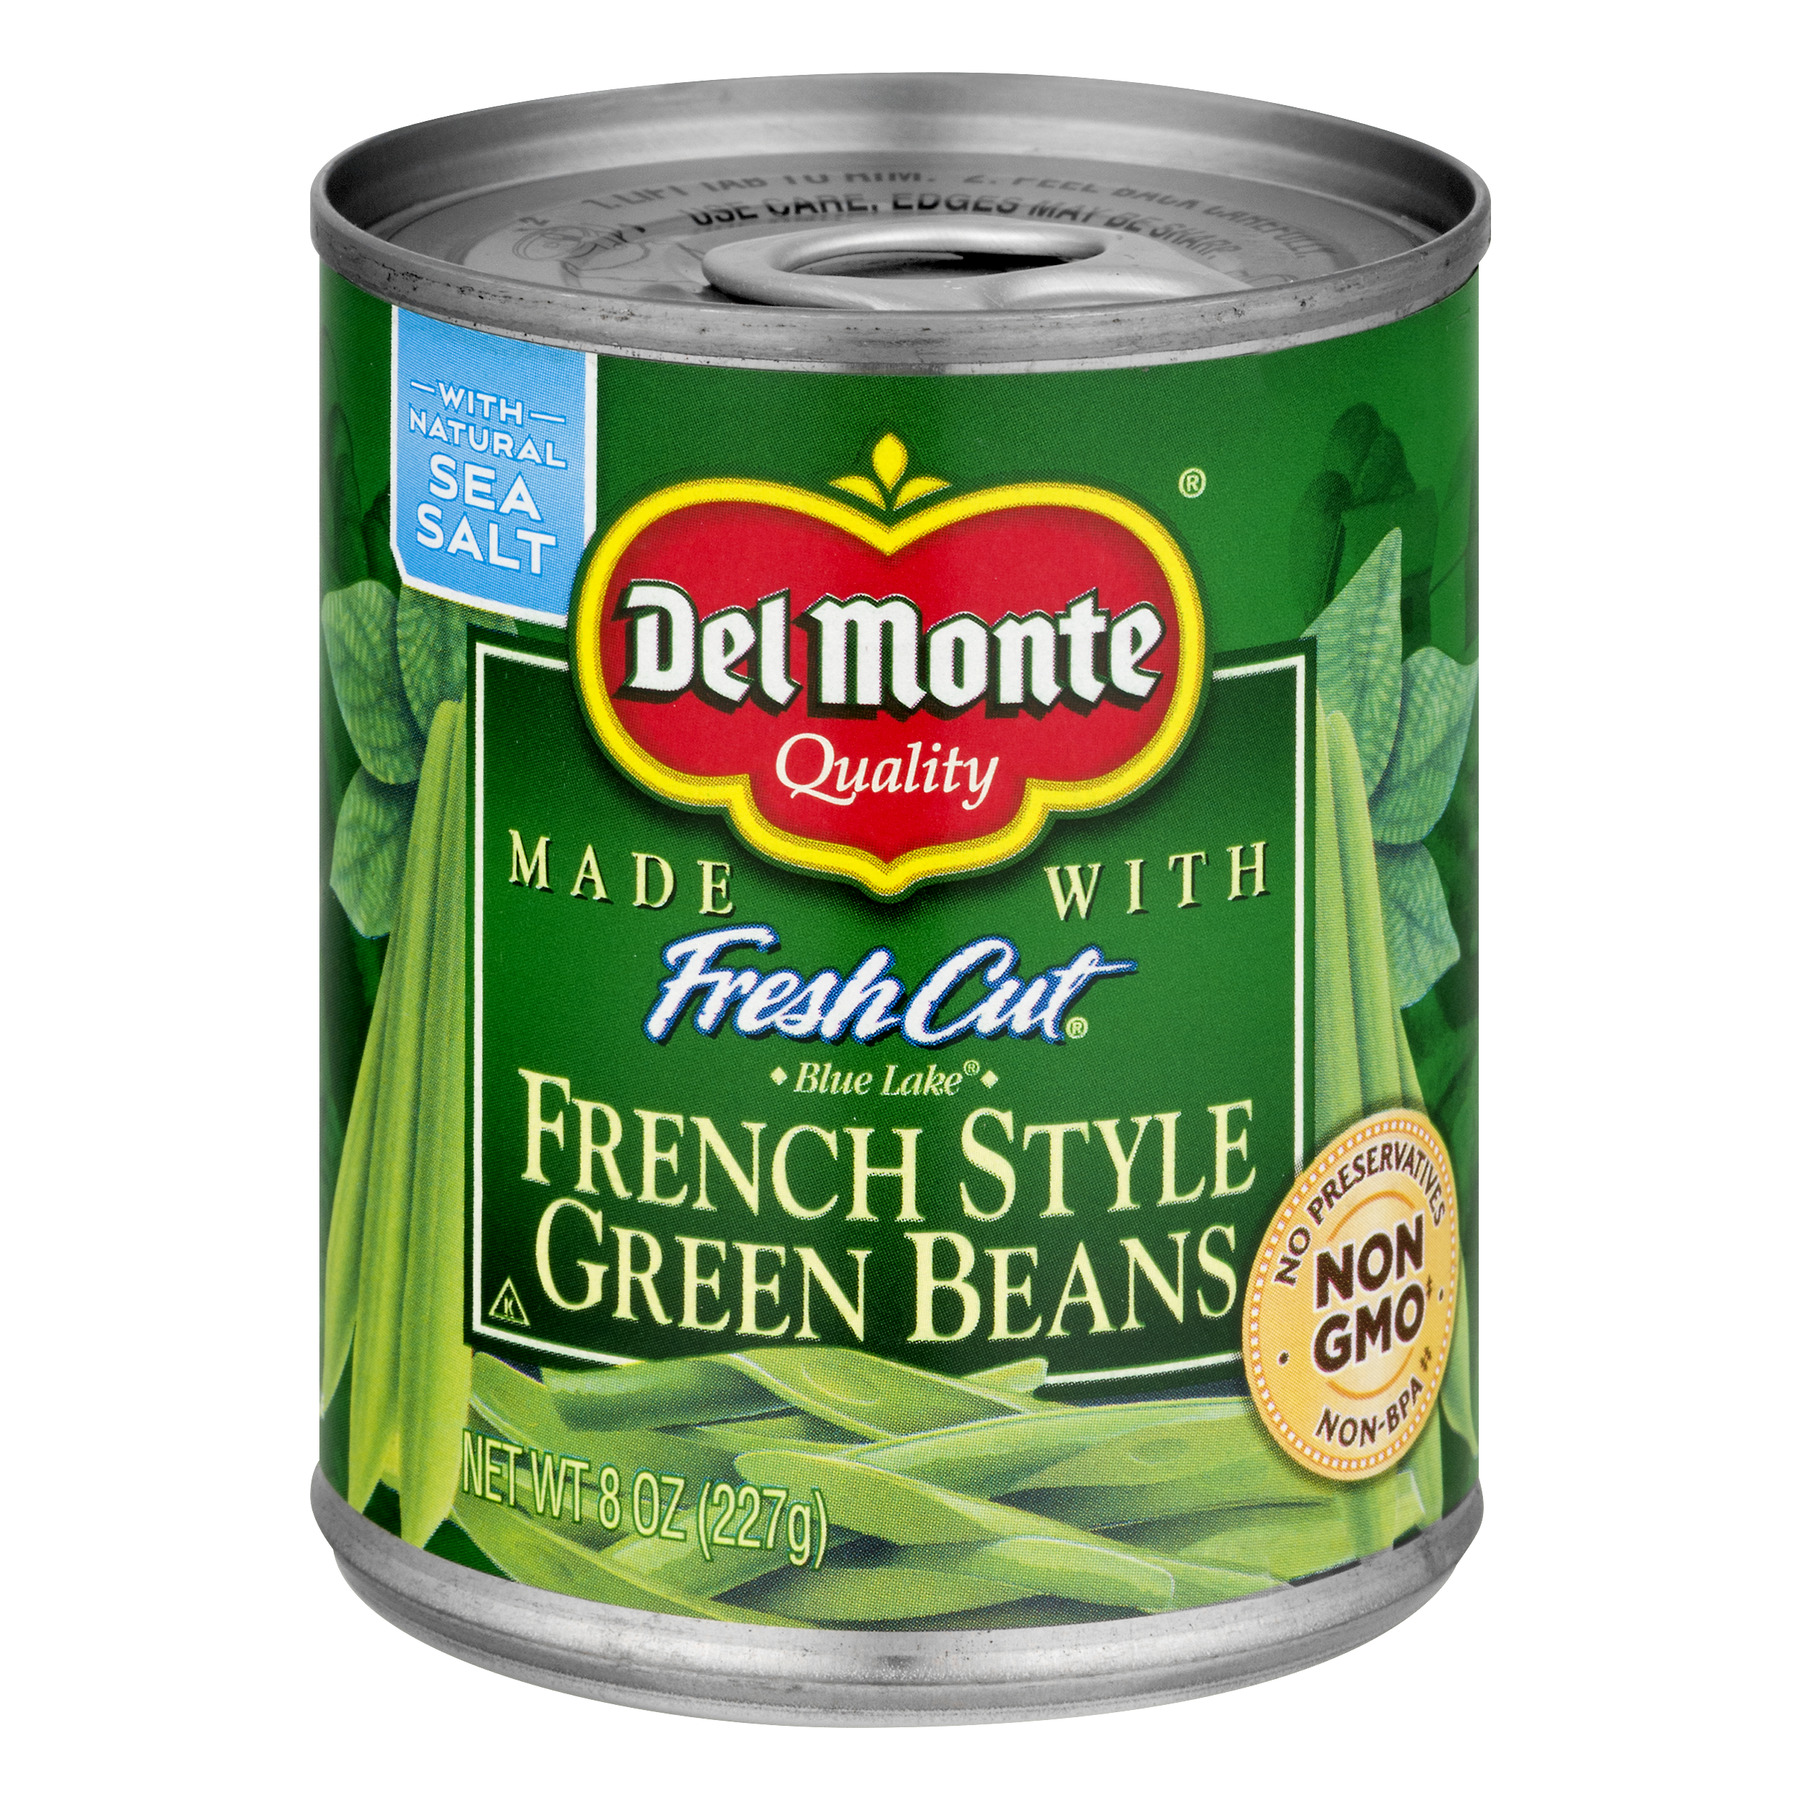 Del Monte Fresh Cut French Style Green Beans, 8.0 OZ